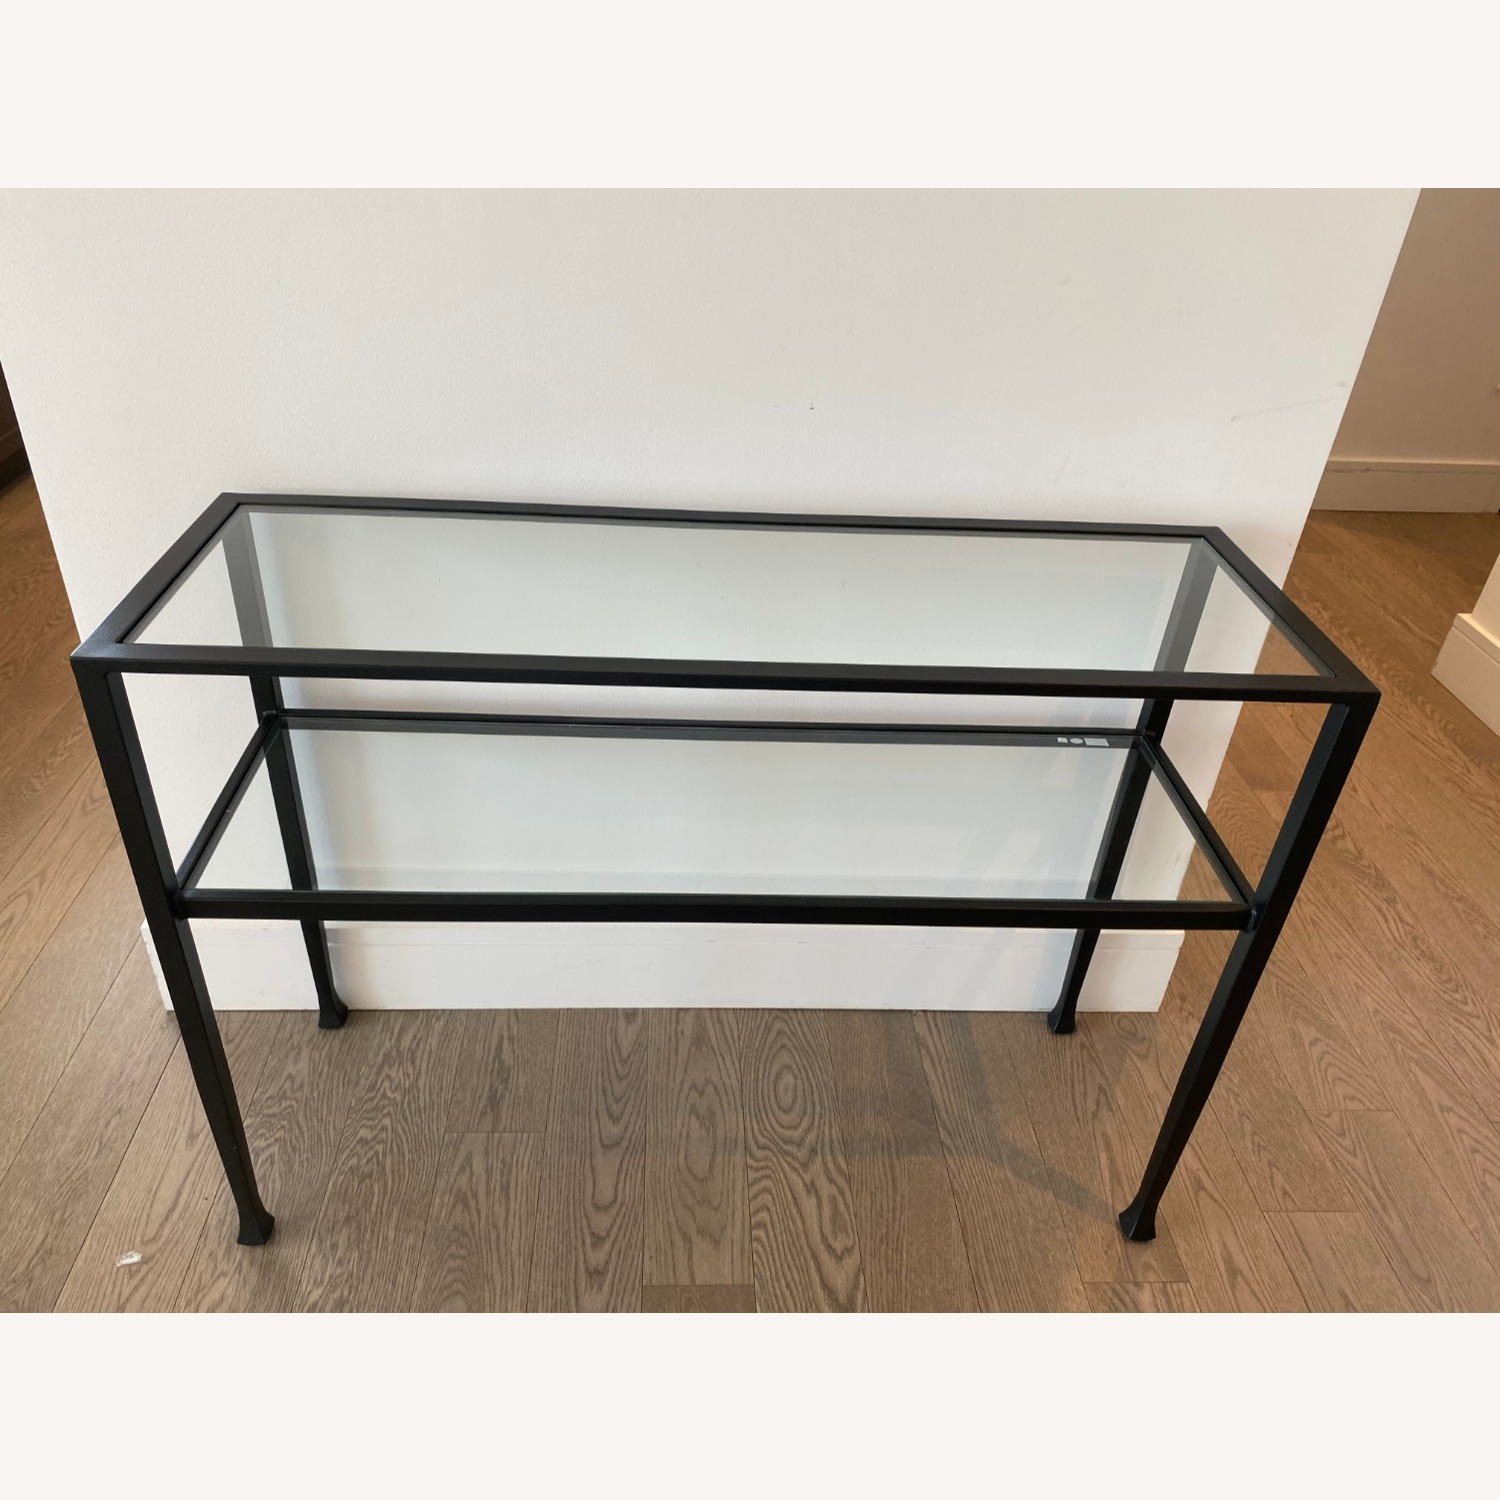 Pottery Barn Glass Console Table - image-1